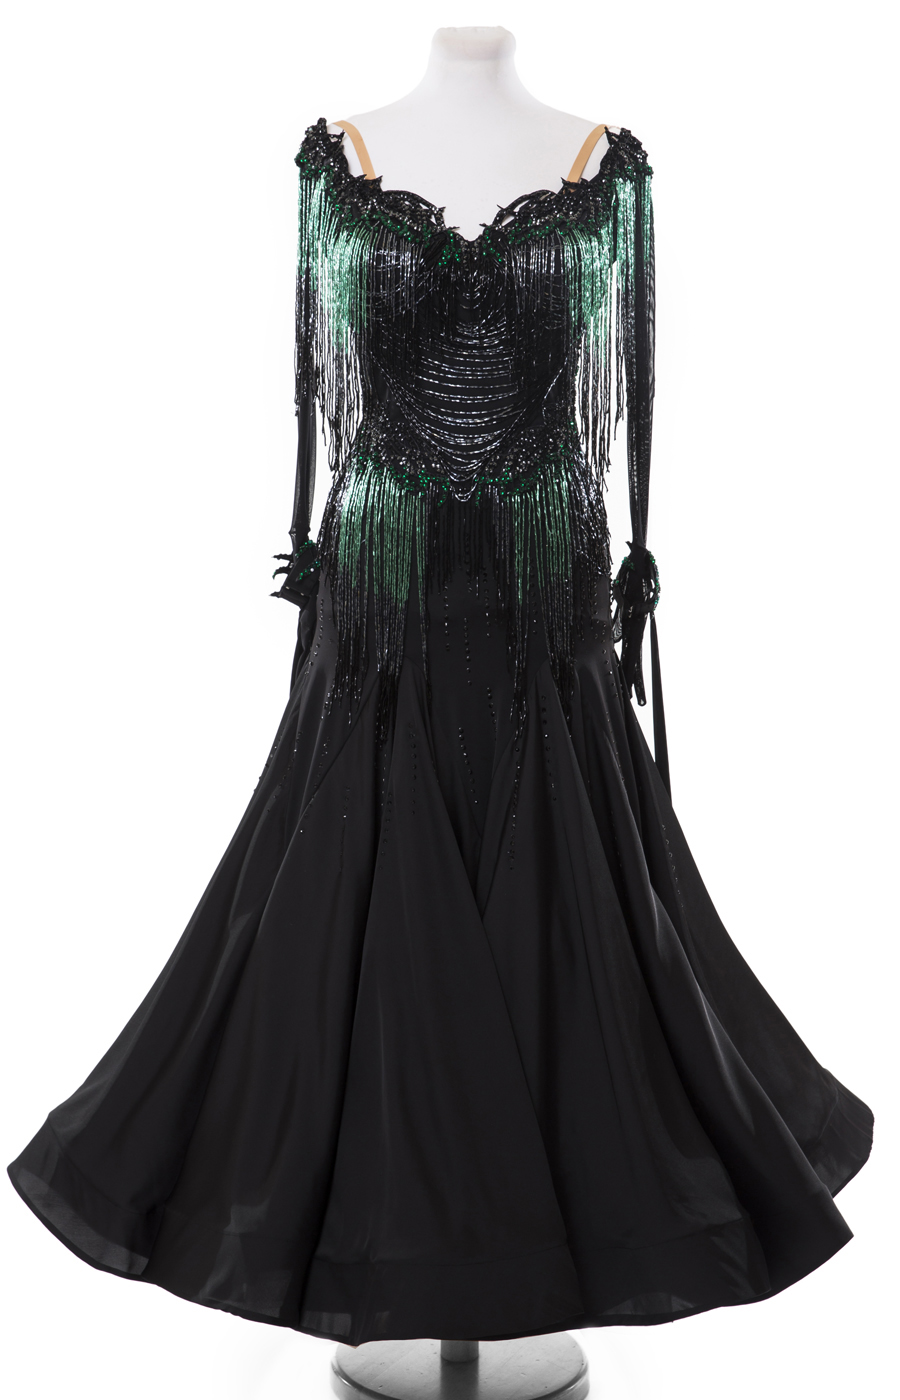 Ballroom dress Bellatrix